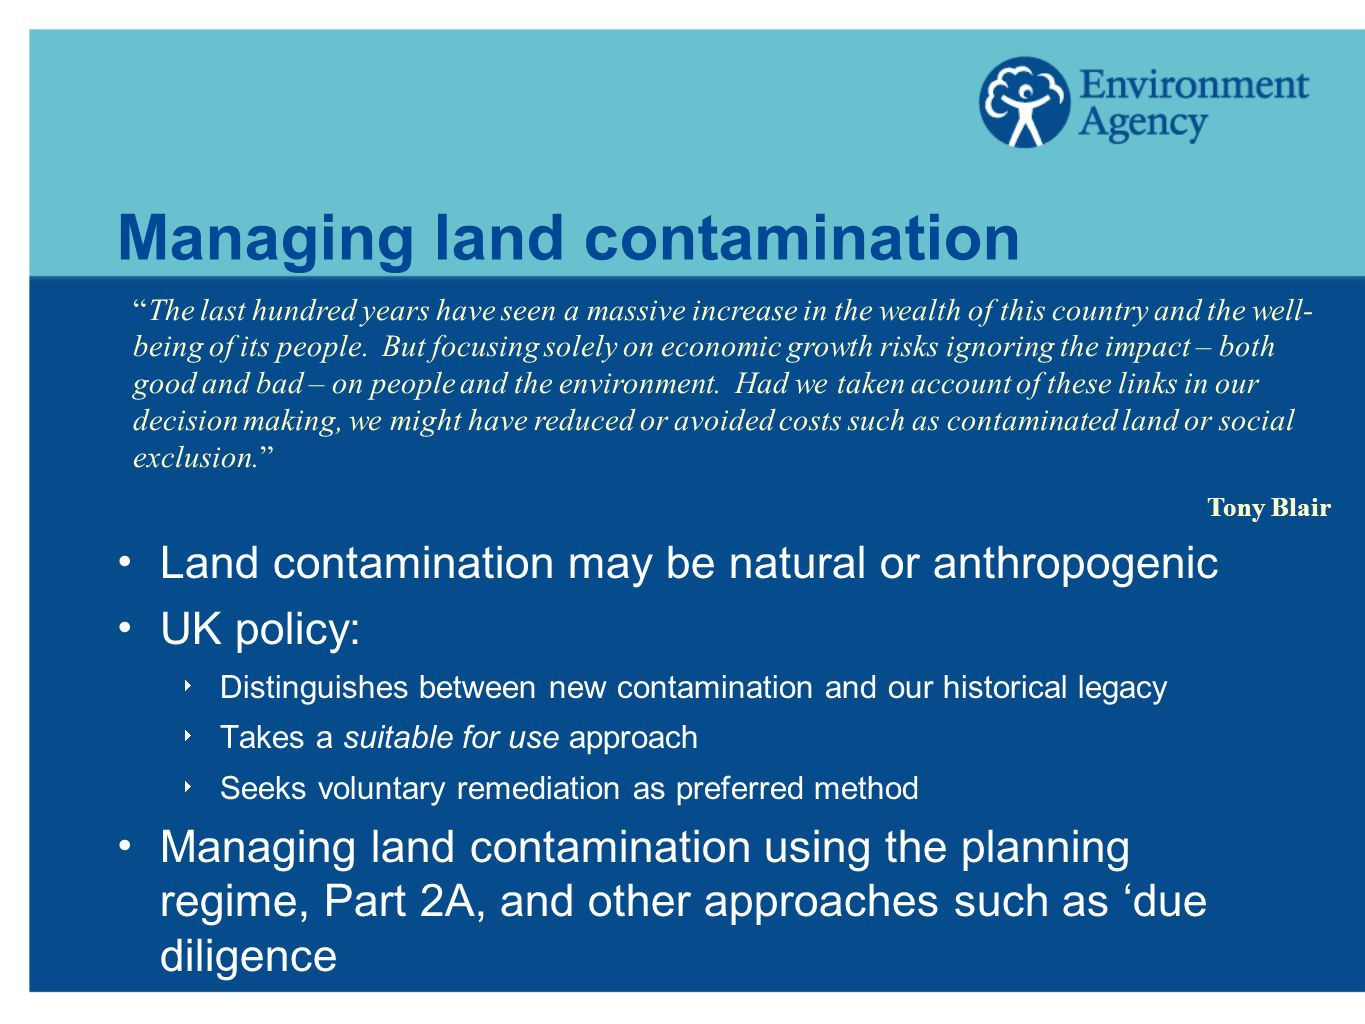 Managing land contamination Land contamination may be natural or anthropogenic UK policy: Distinguishes between new contamination and our historical legacy Takes a suitable for use approach Seeks voluntary remediation as preferred method Managing land contamination using the planning regime, Part 2A, and other approaches such as due diligence The last hundred years have seen a massive increase in the wealth of this country and the well- being of its people.